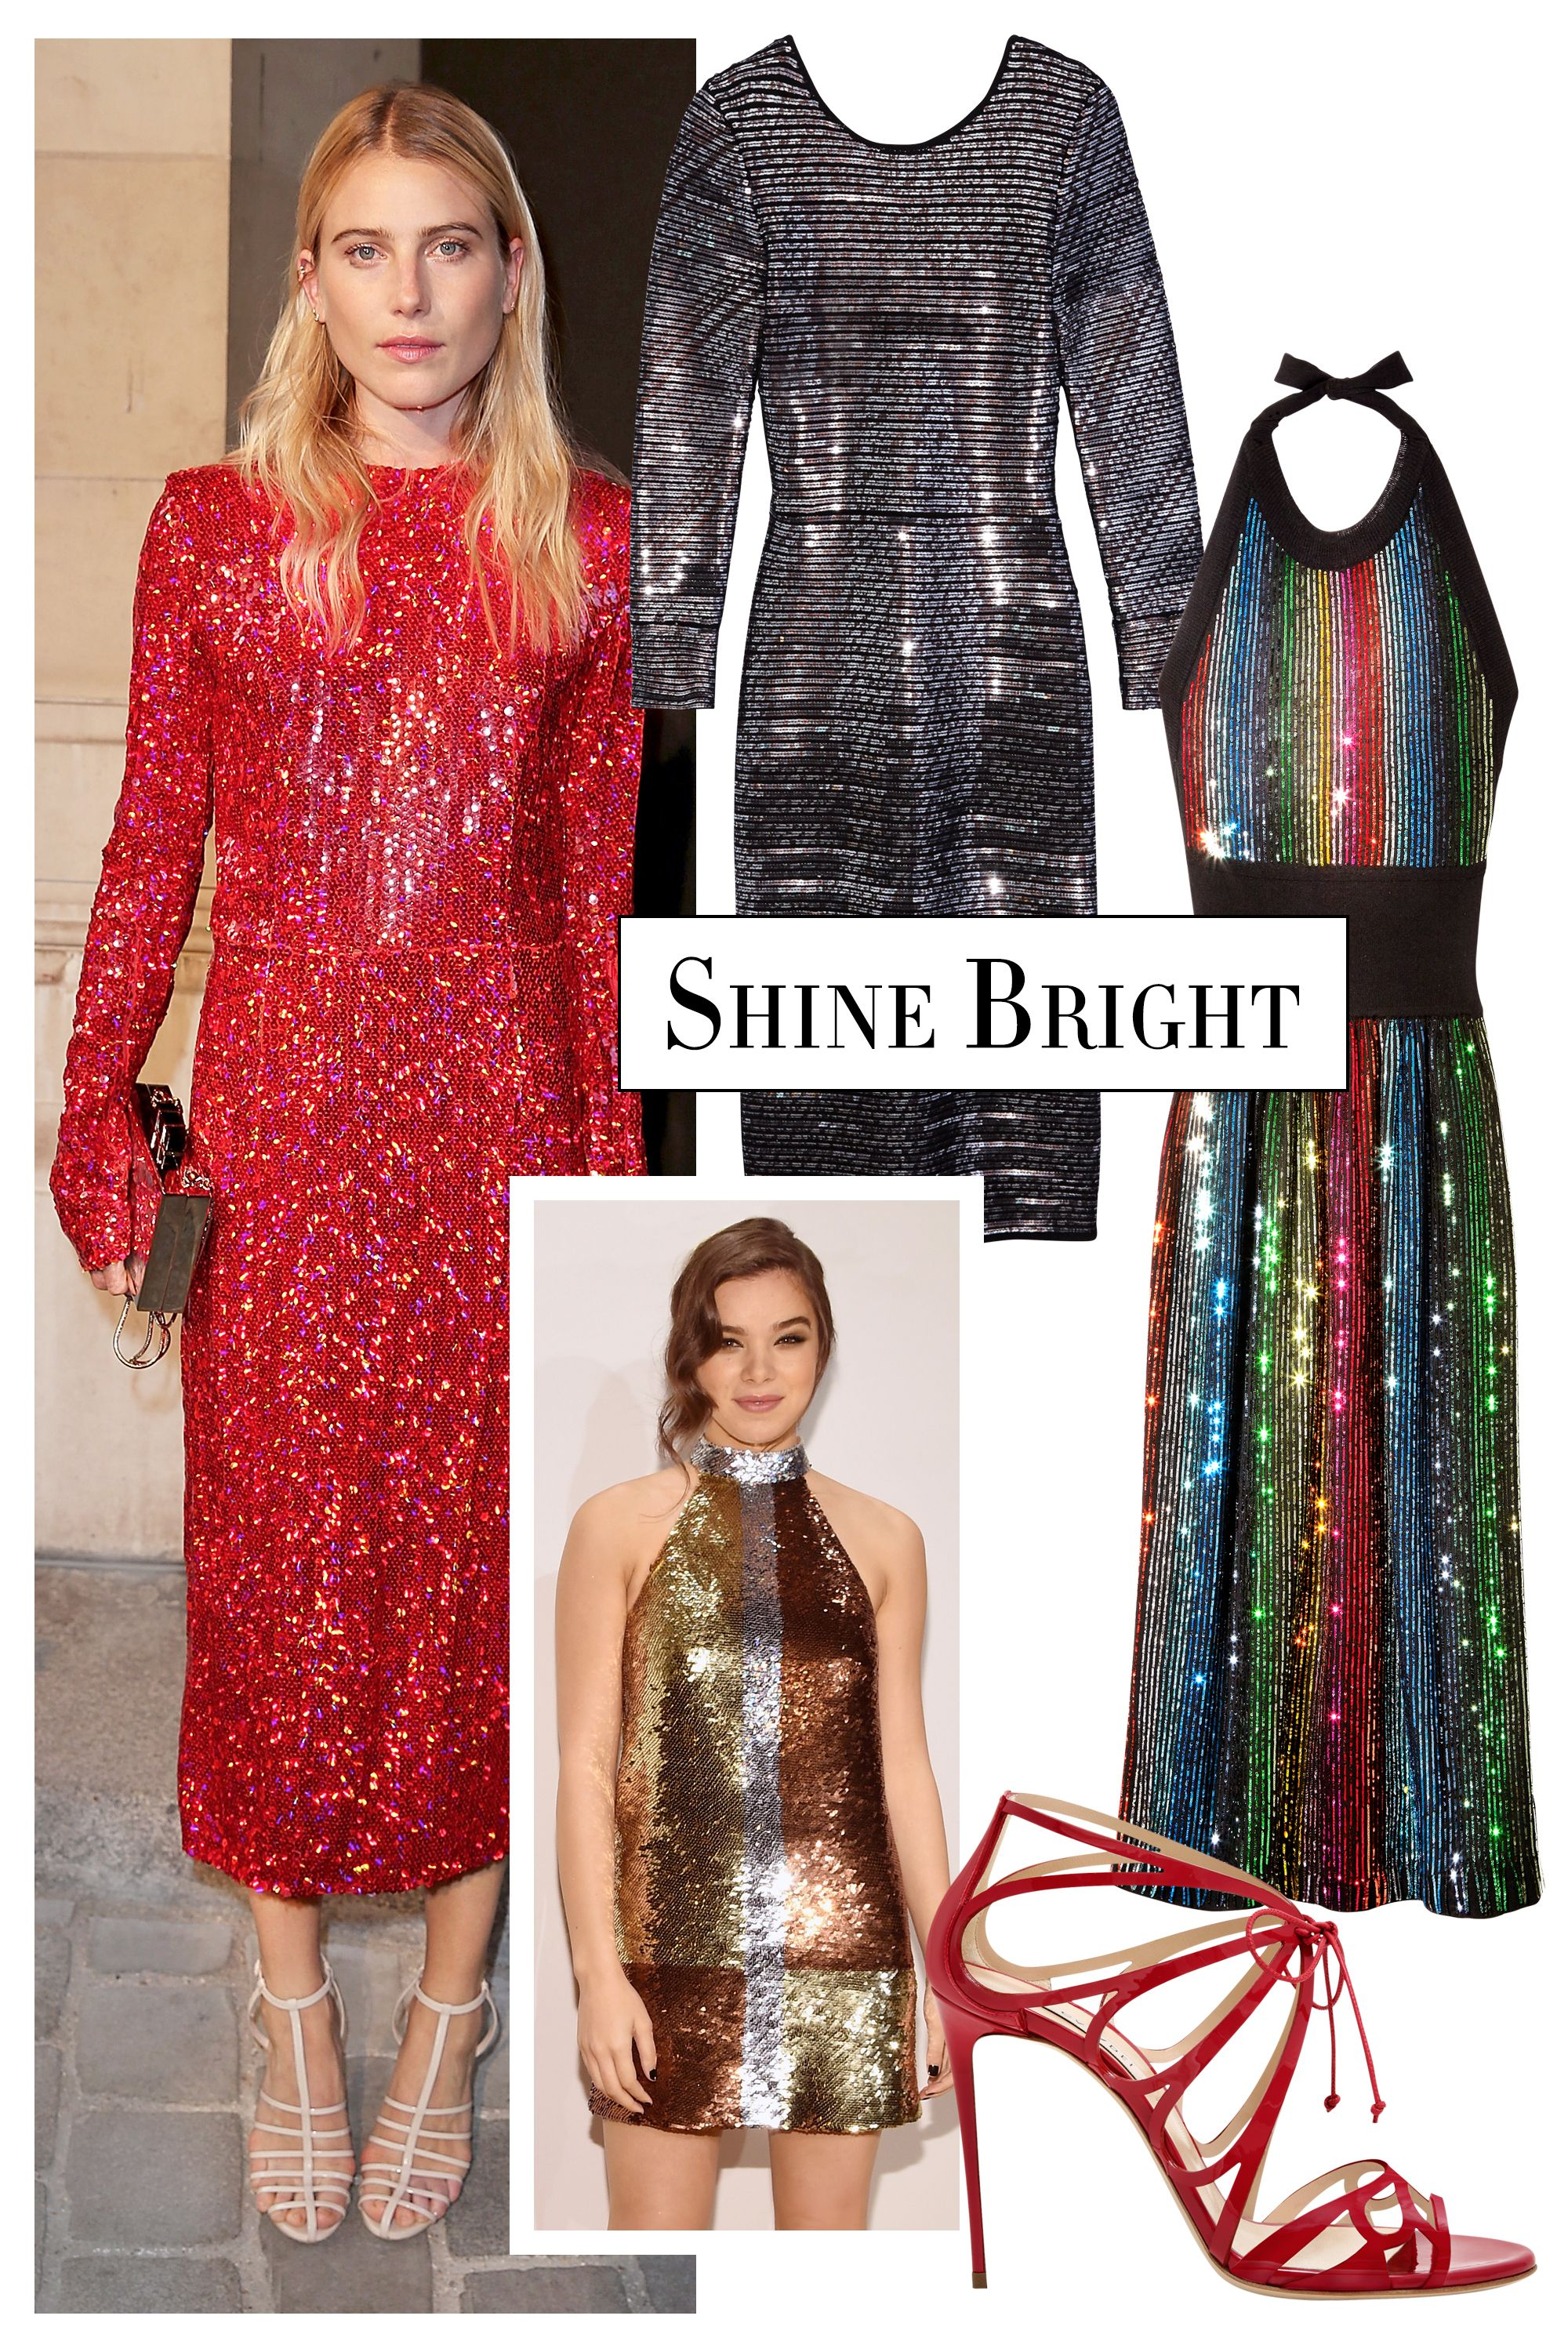 "<p>Nothing says the holidays like sparkling sequins. Follow Dree Hemingway's lead and opt for a dress in single statement color, or go for a rainbow-hued design like Sonia Rykiel's disco-ready look. </p><p><strong>Sonia Rykiel</strong> dress, $2,770, <a href=""https://shop.harpersbazaar.com/designers/sonia-rykiel/index.html"" target=""_blank"">shopBAZAAR.com</a><img src=""http://assets.hdmtools.com/images/HBZ/Shop.svg"" class=""icon shop"">; <strong>Ermanno Scervino</strong> dress, $4,920, <a href=""http://shop.ermannoscervino.it/usa/en-gb"" target=""_blank"">ermannoscervino.it</a>; <strong>Casadei</strong> sandal, $795, similar styles available at <a href=""https://shop.harpersbazaar.com/designers/casadei/"" target=""_blank"">shopBAZAAR.com</a><img src=""http://assets.hdmtools.com/images/HBZ/Shop.svg"" class=""icon shop"">.</p>"